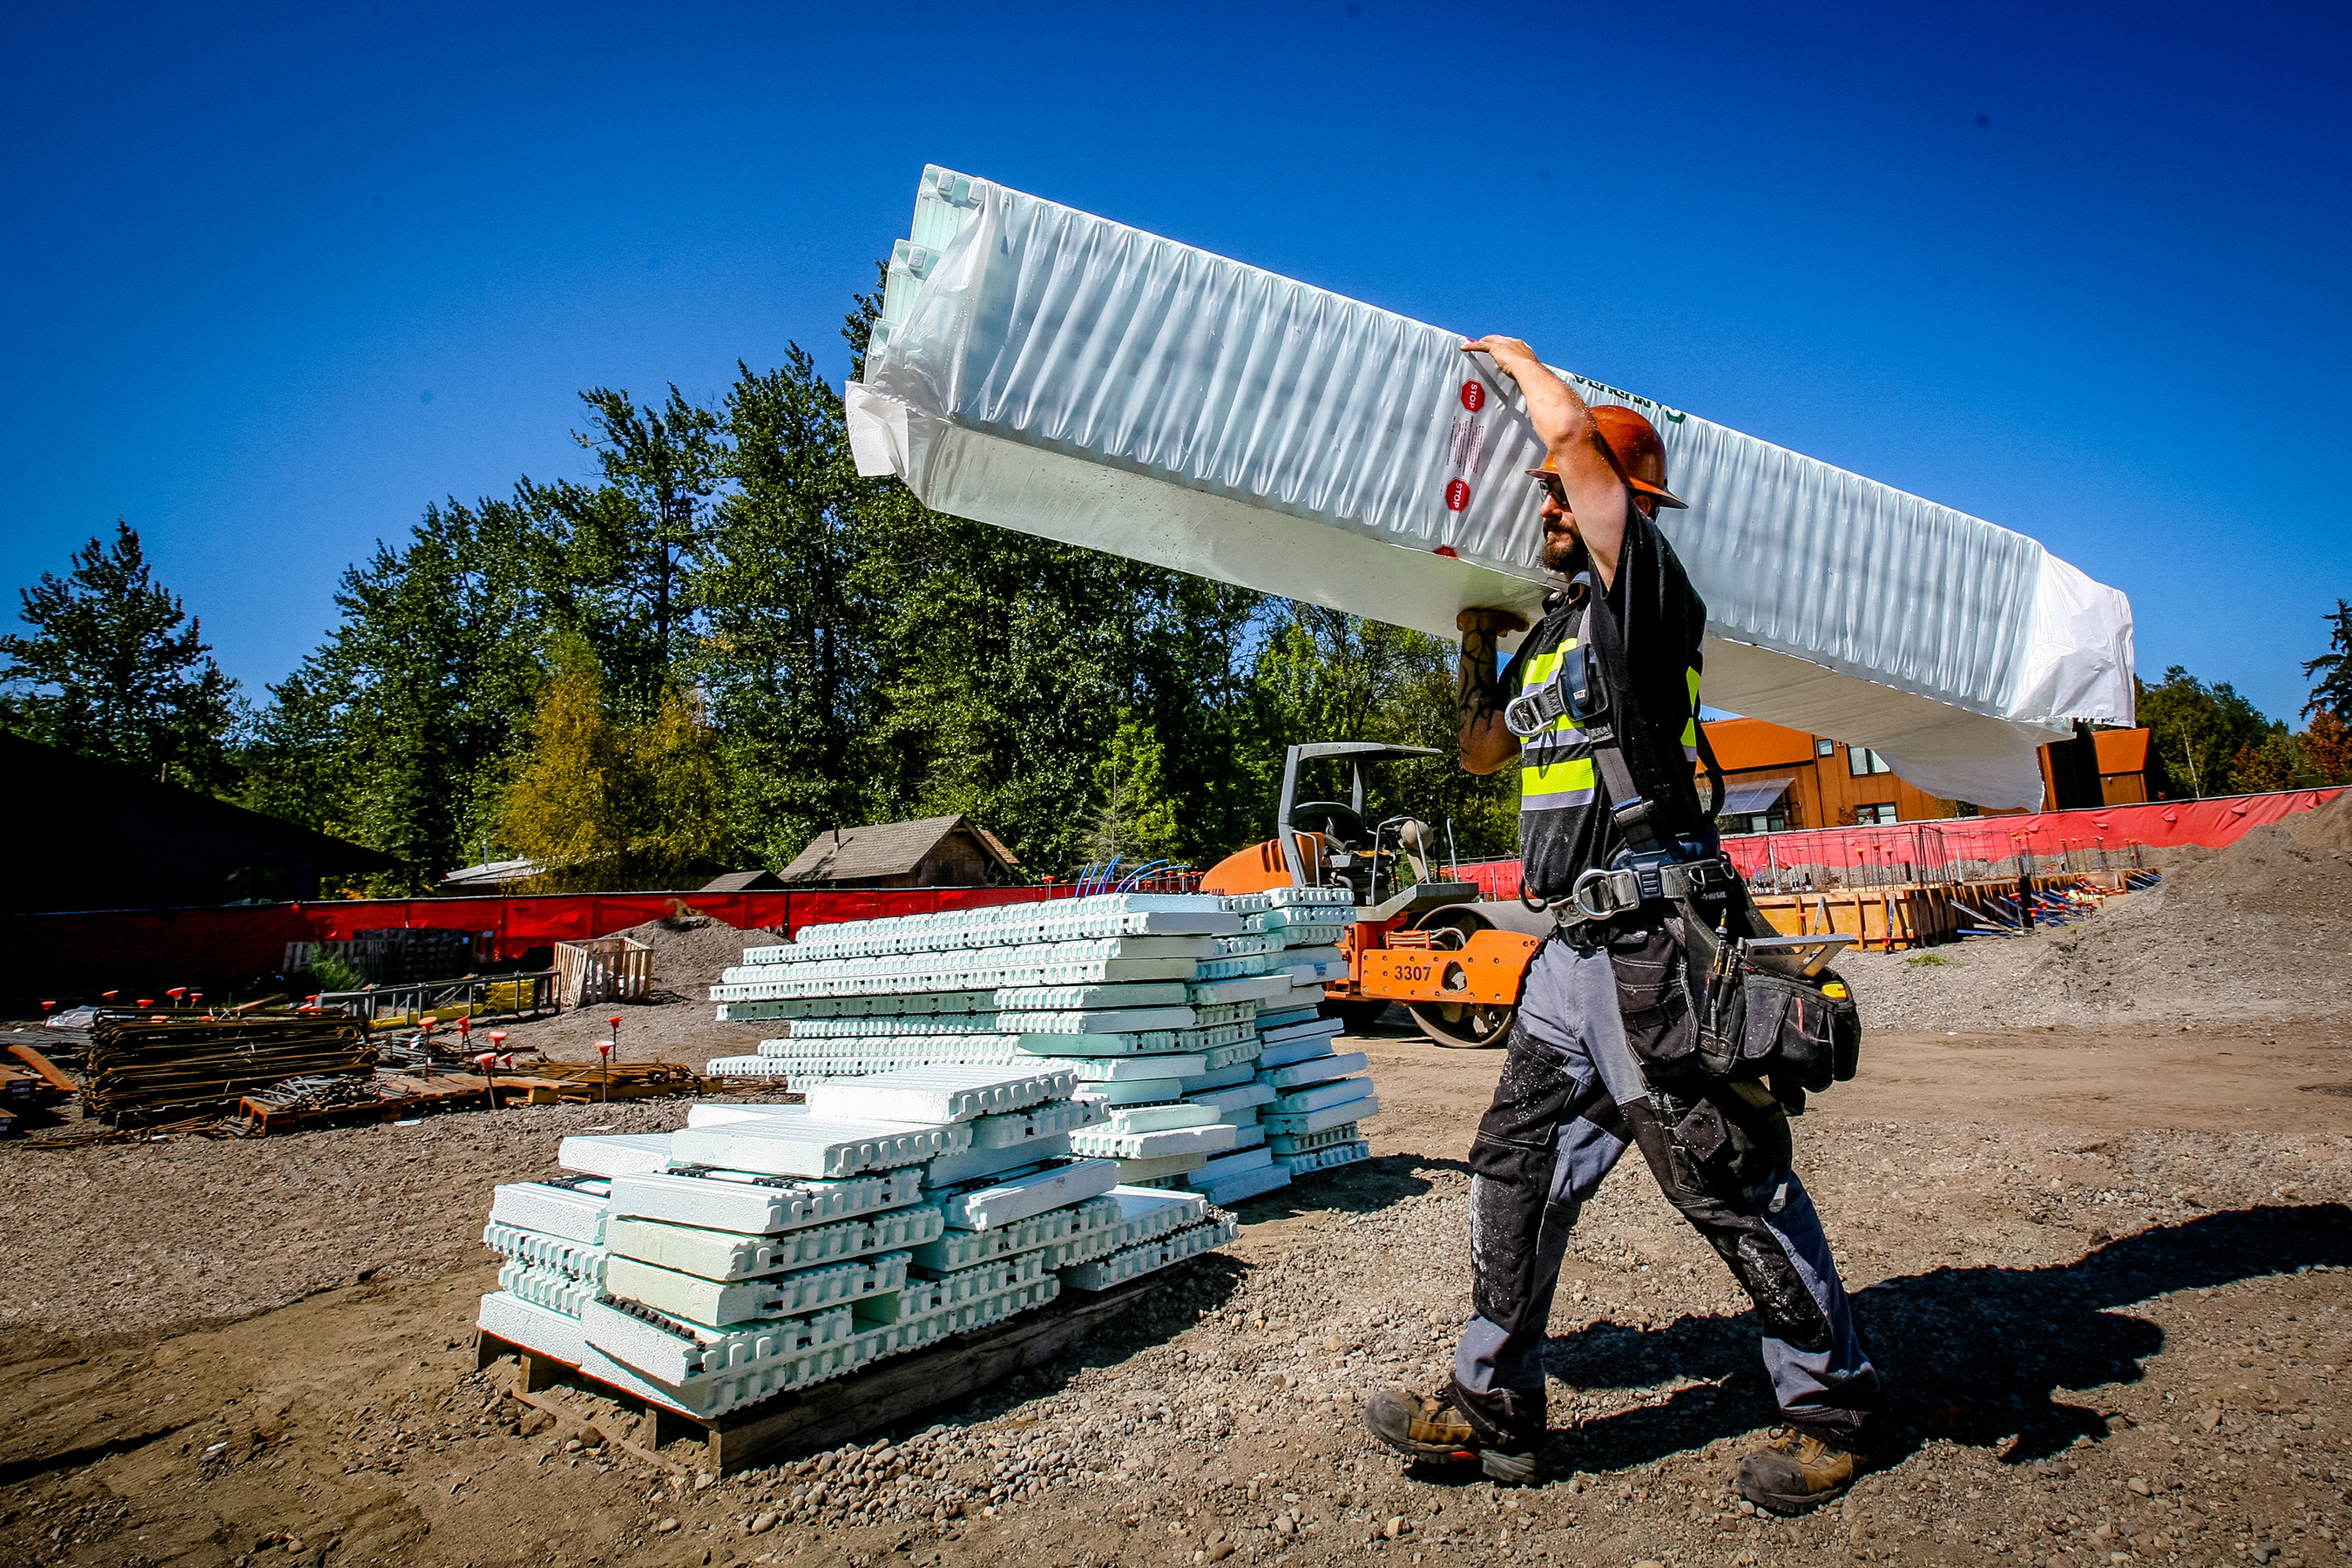 NUDURA Insulated Concrete Forms allow for stronger, safer, eco